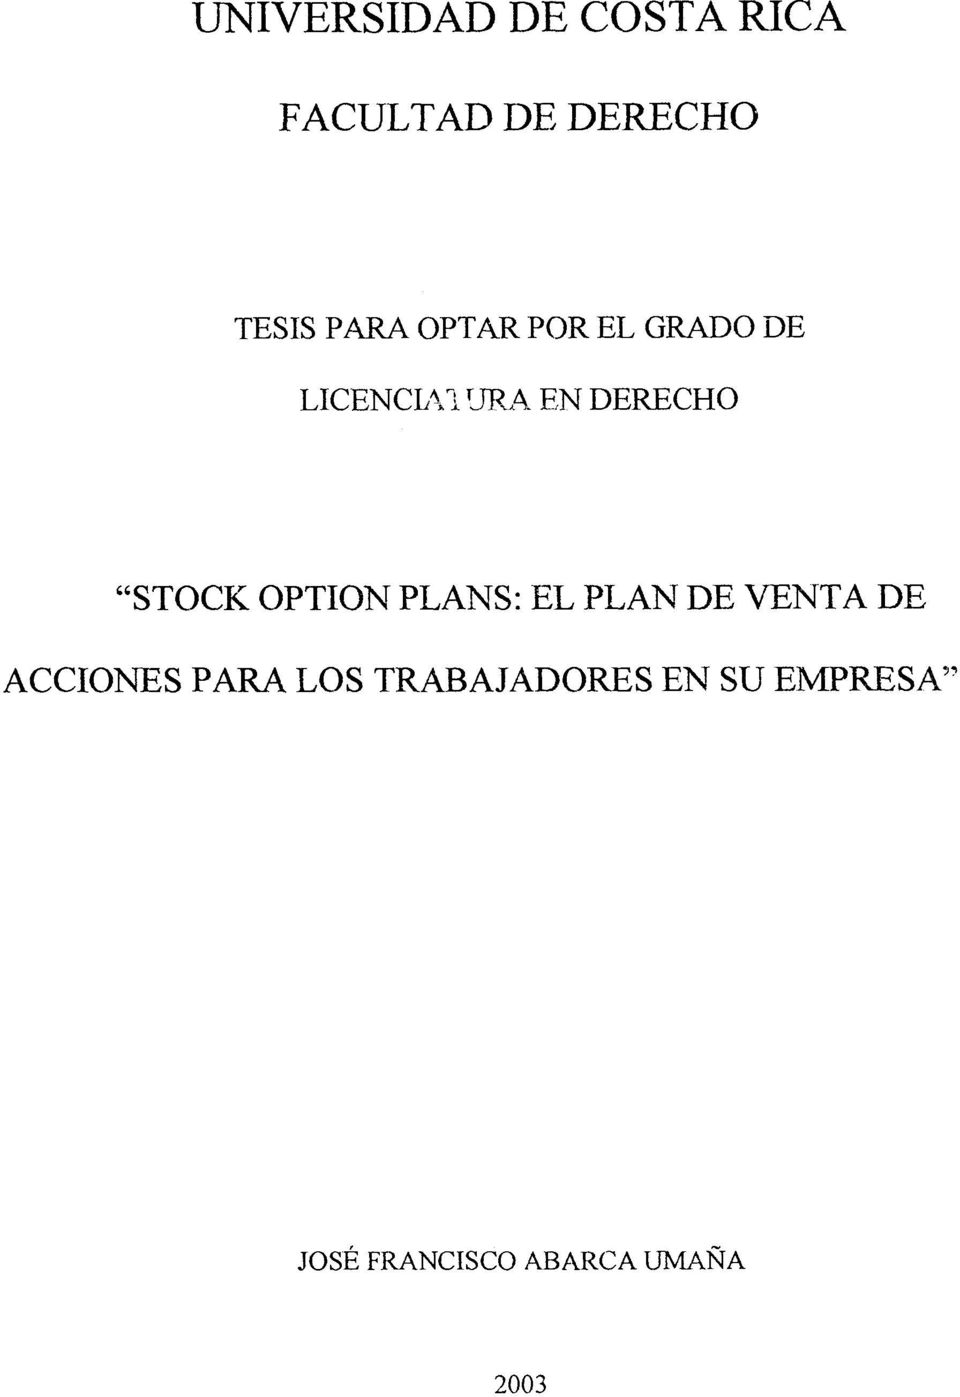 "? 'JP,,A EN DERECHO ""STOCK OPTION PLANS: EL PLAN"